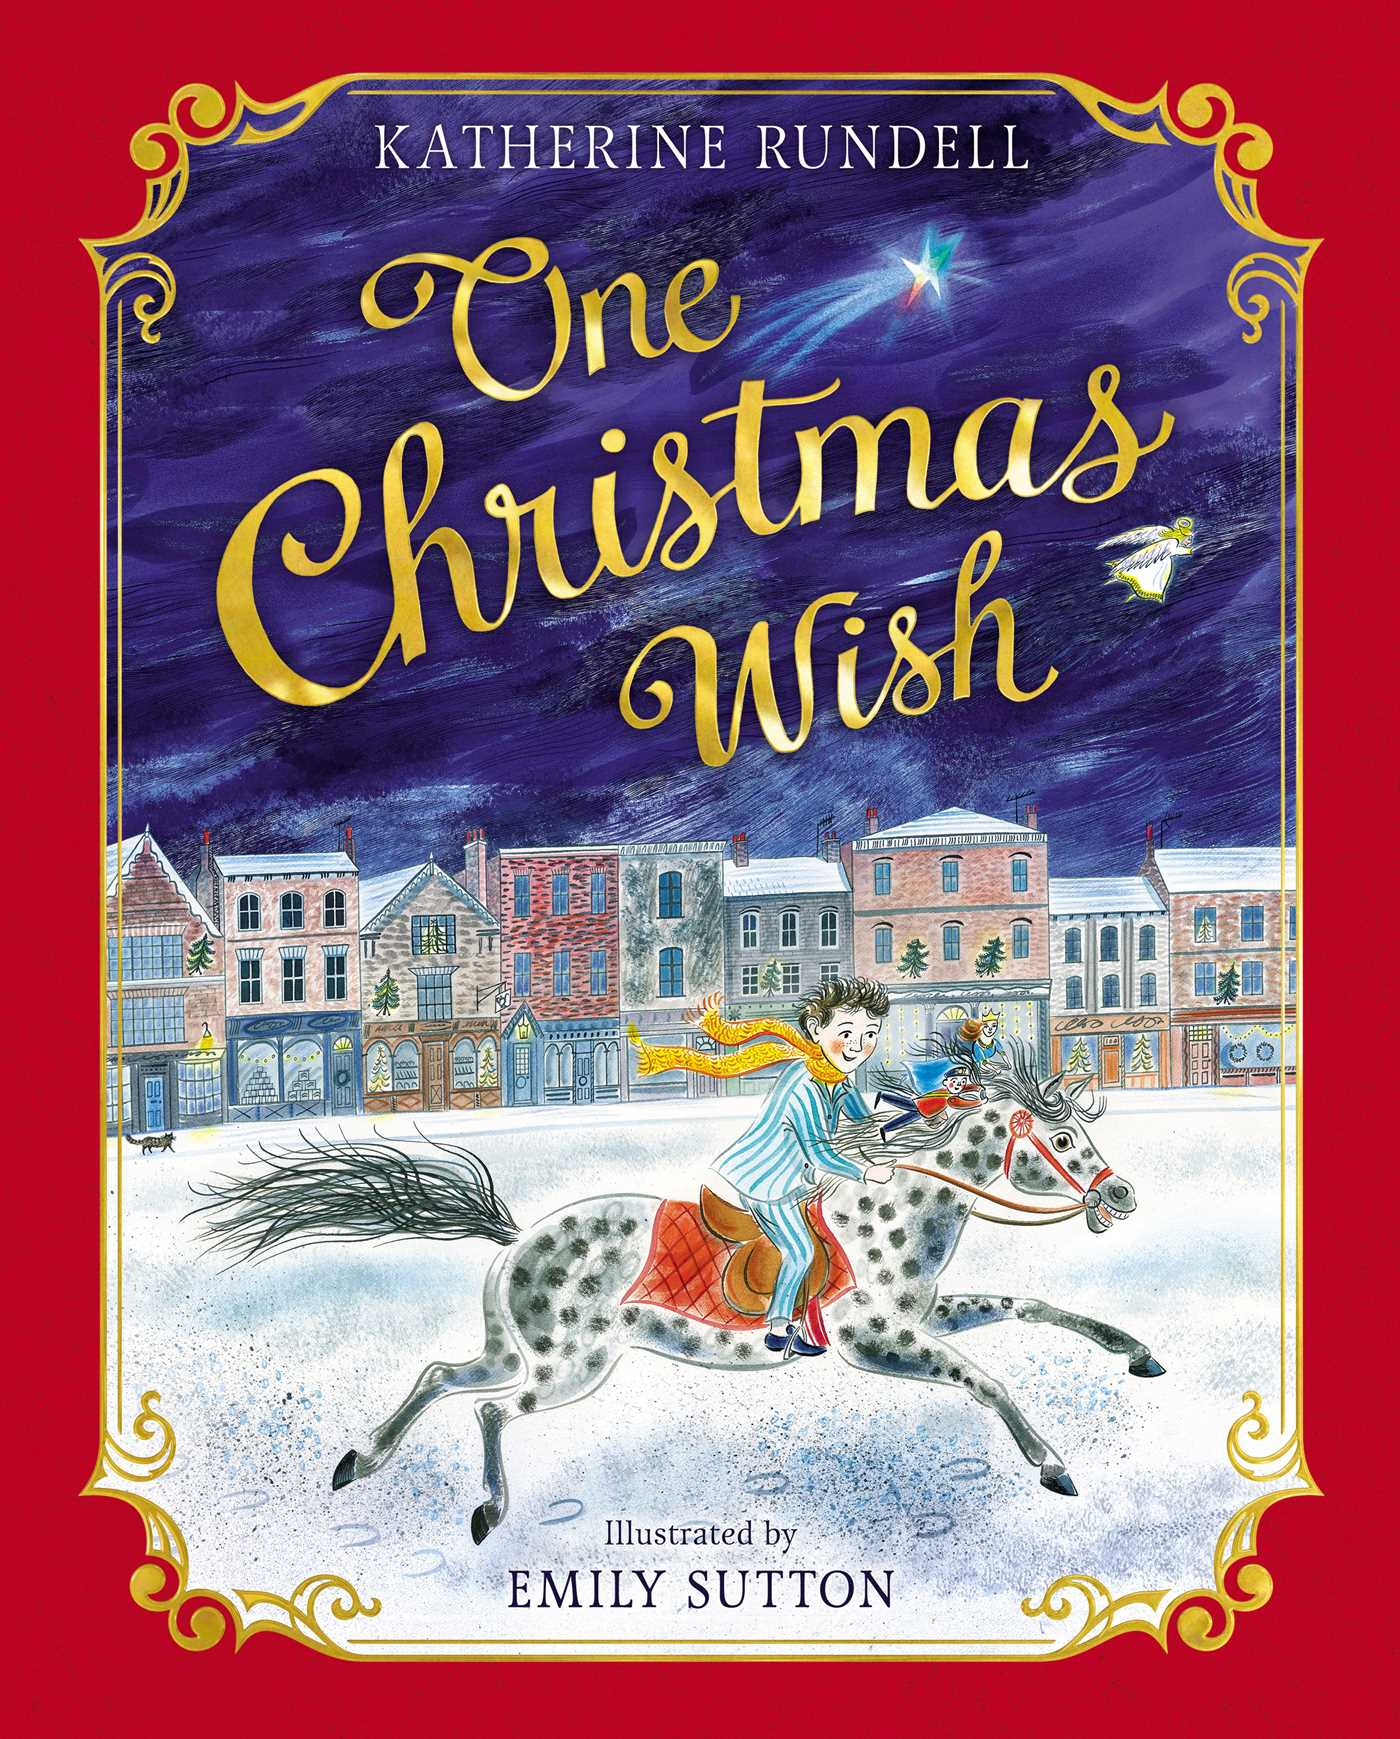 One Christmas Wish | Book by Katherine Rundell, Emily Sutton ...